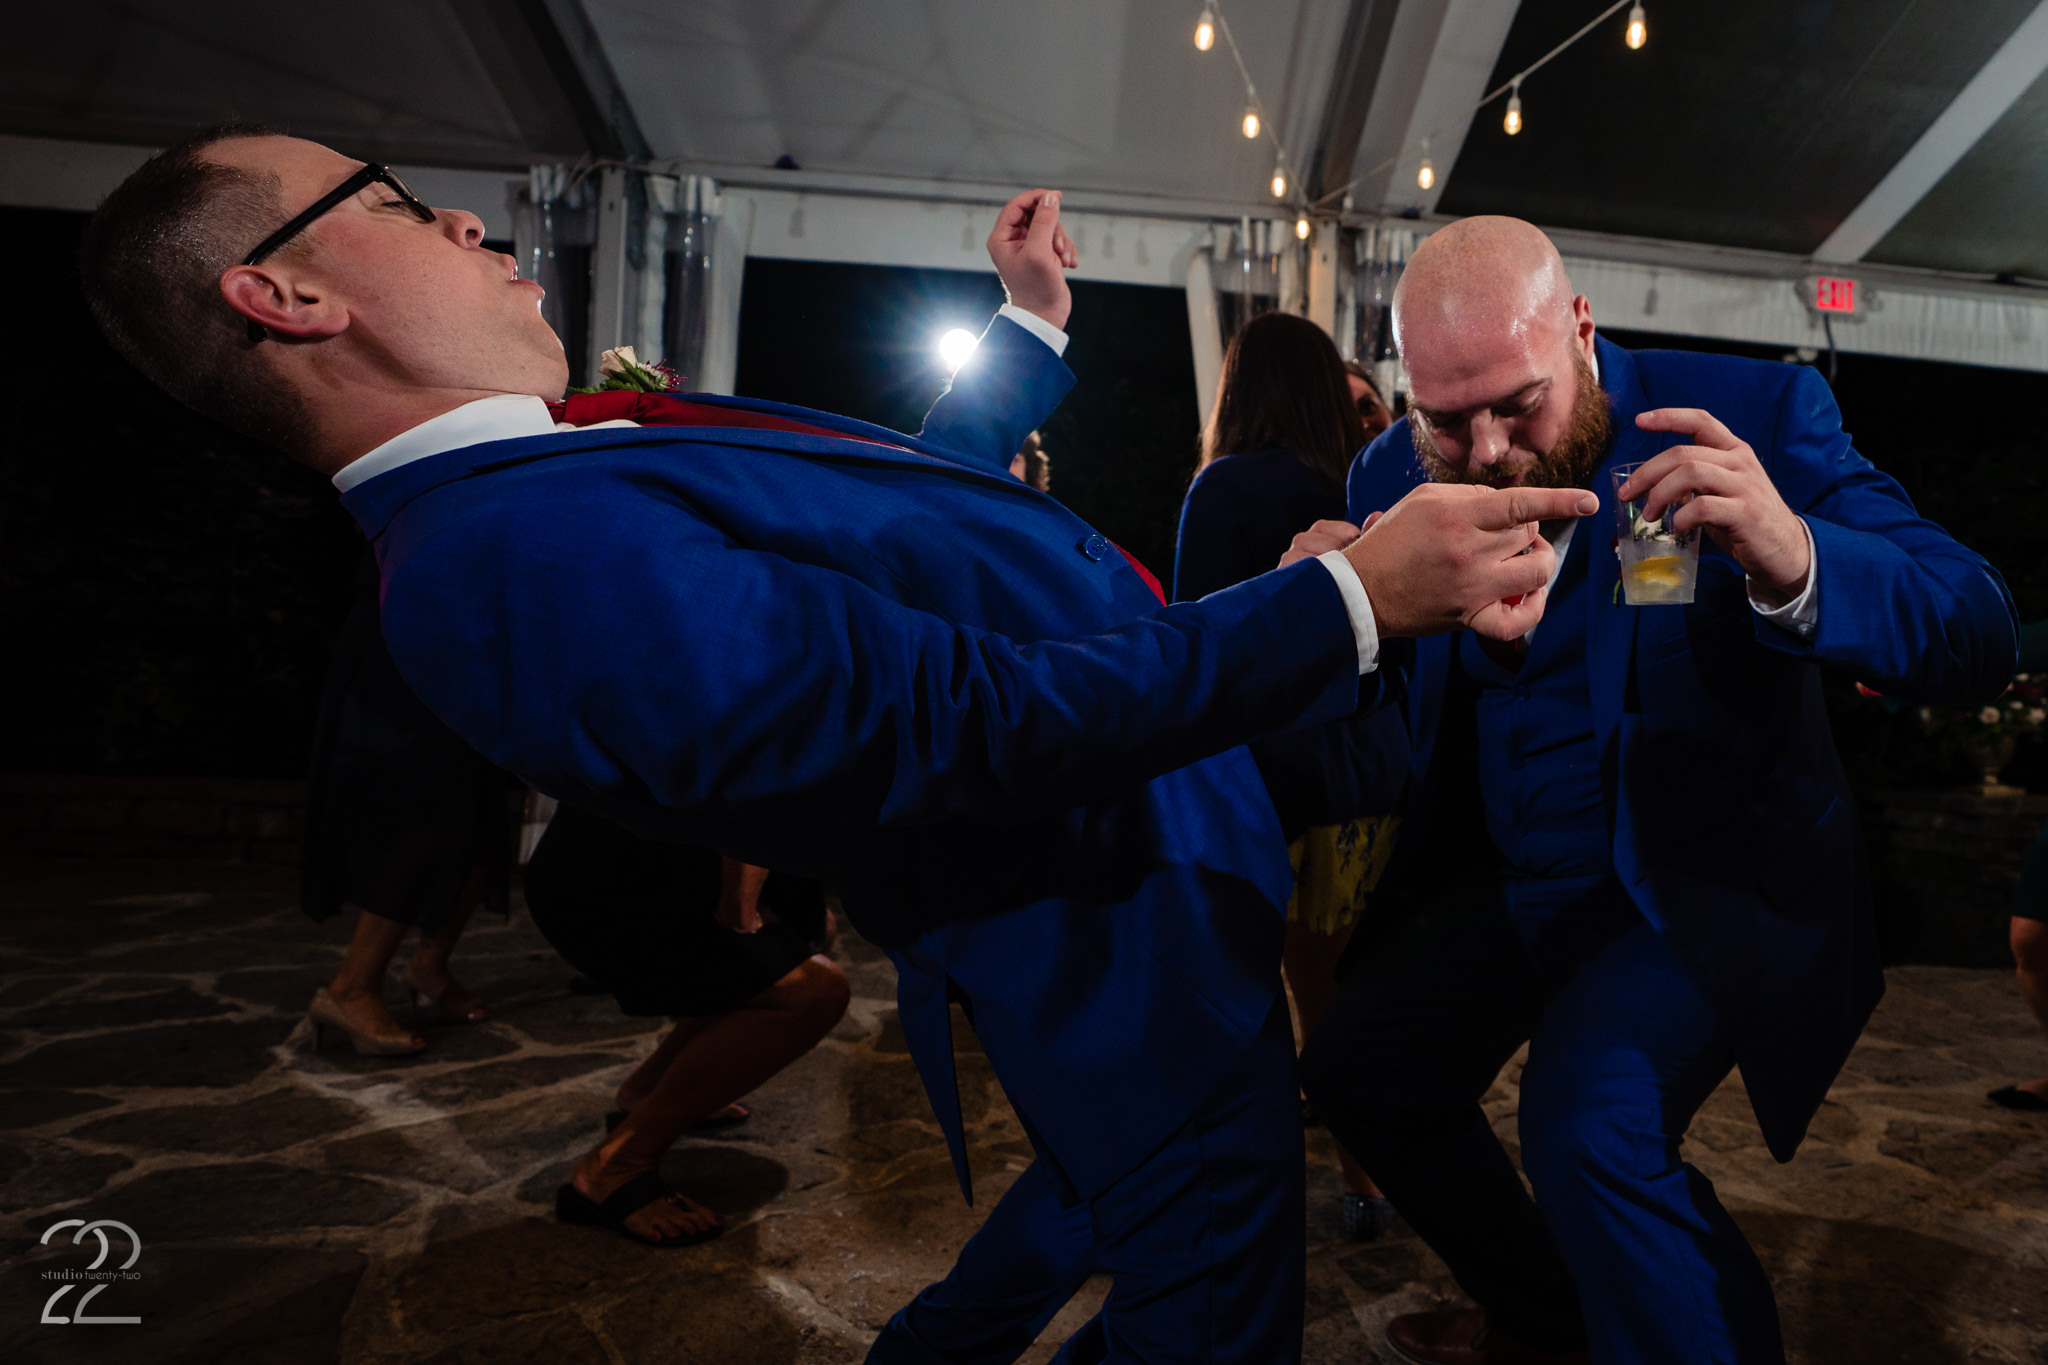 There is nothing more fun for Megan to photograph at a wedding then people having the time of their lives. Megan loves capturing wild receptions and hilarious wedding parties.